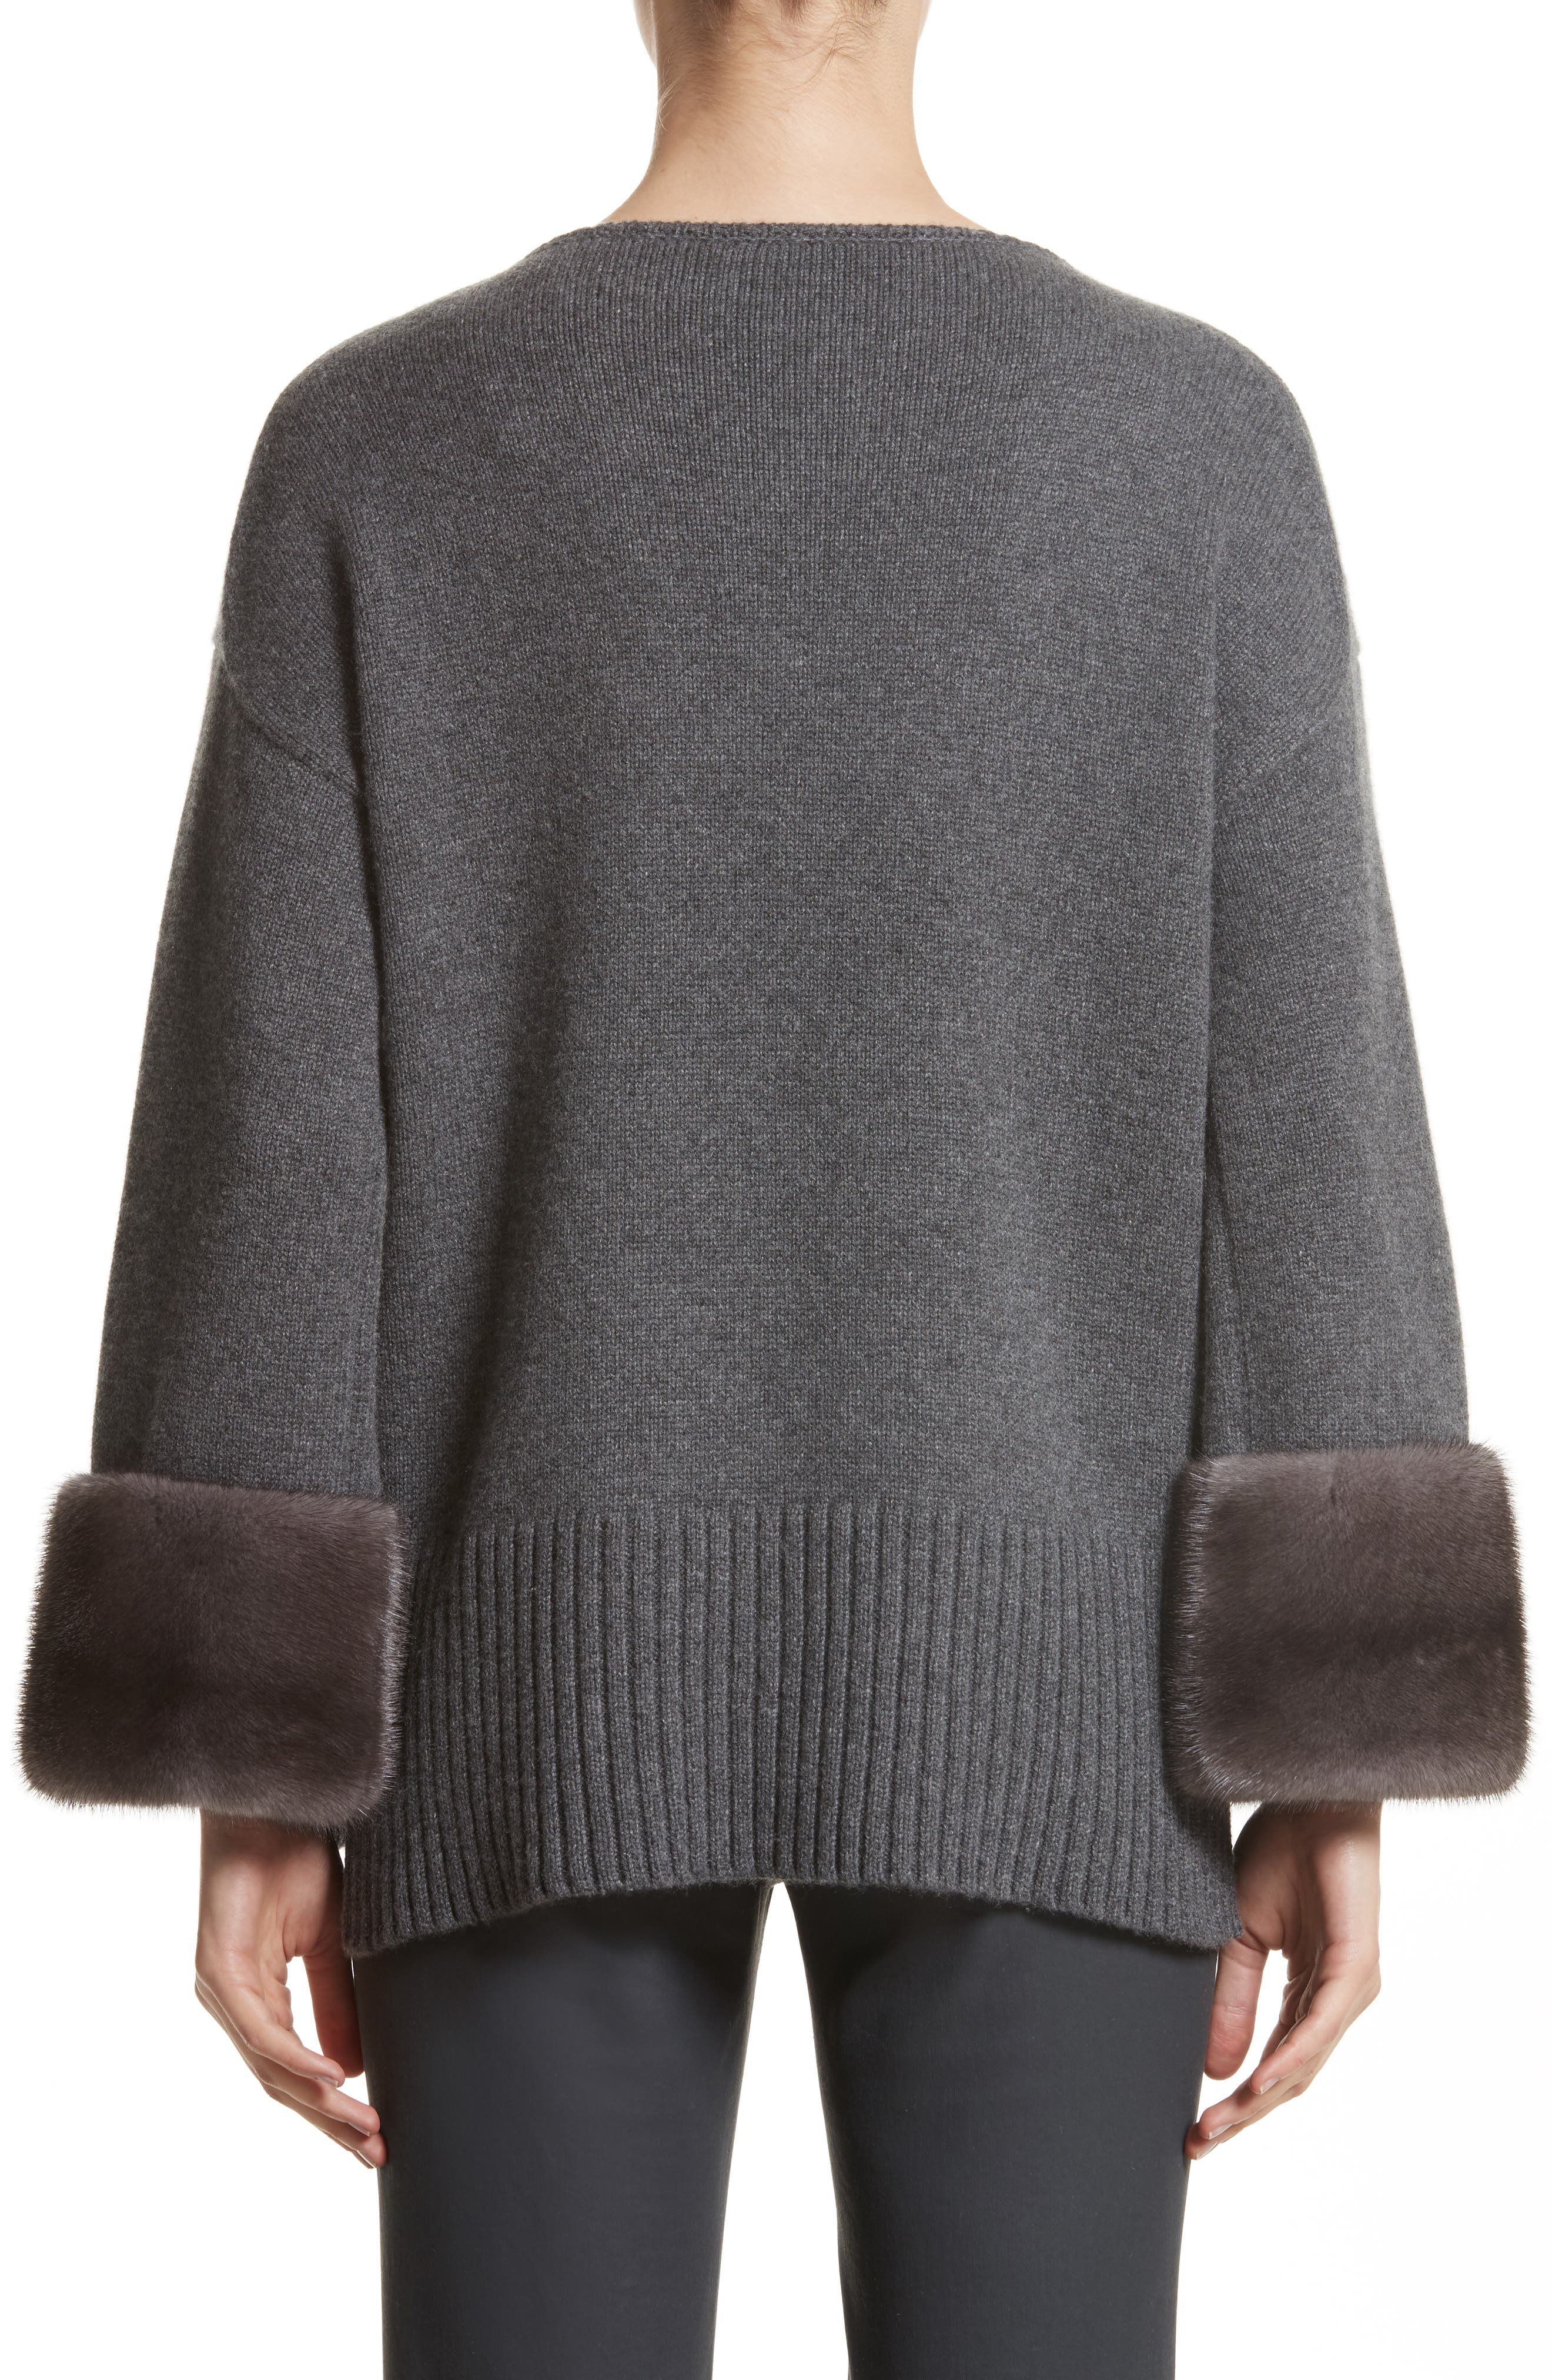 Cashmere Sweater with Genuine Mink Fur Cuffs,                             Alternate thumbnail 2, color,                             020